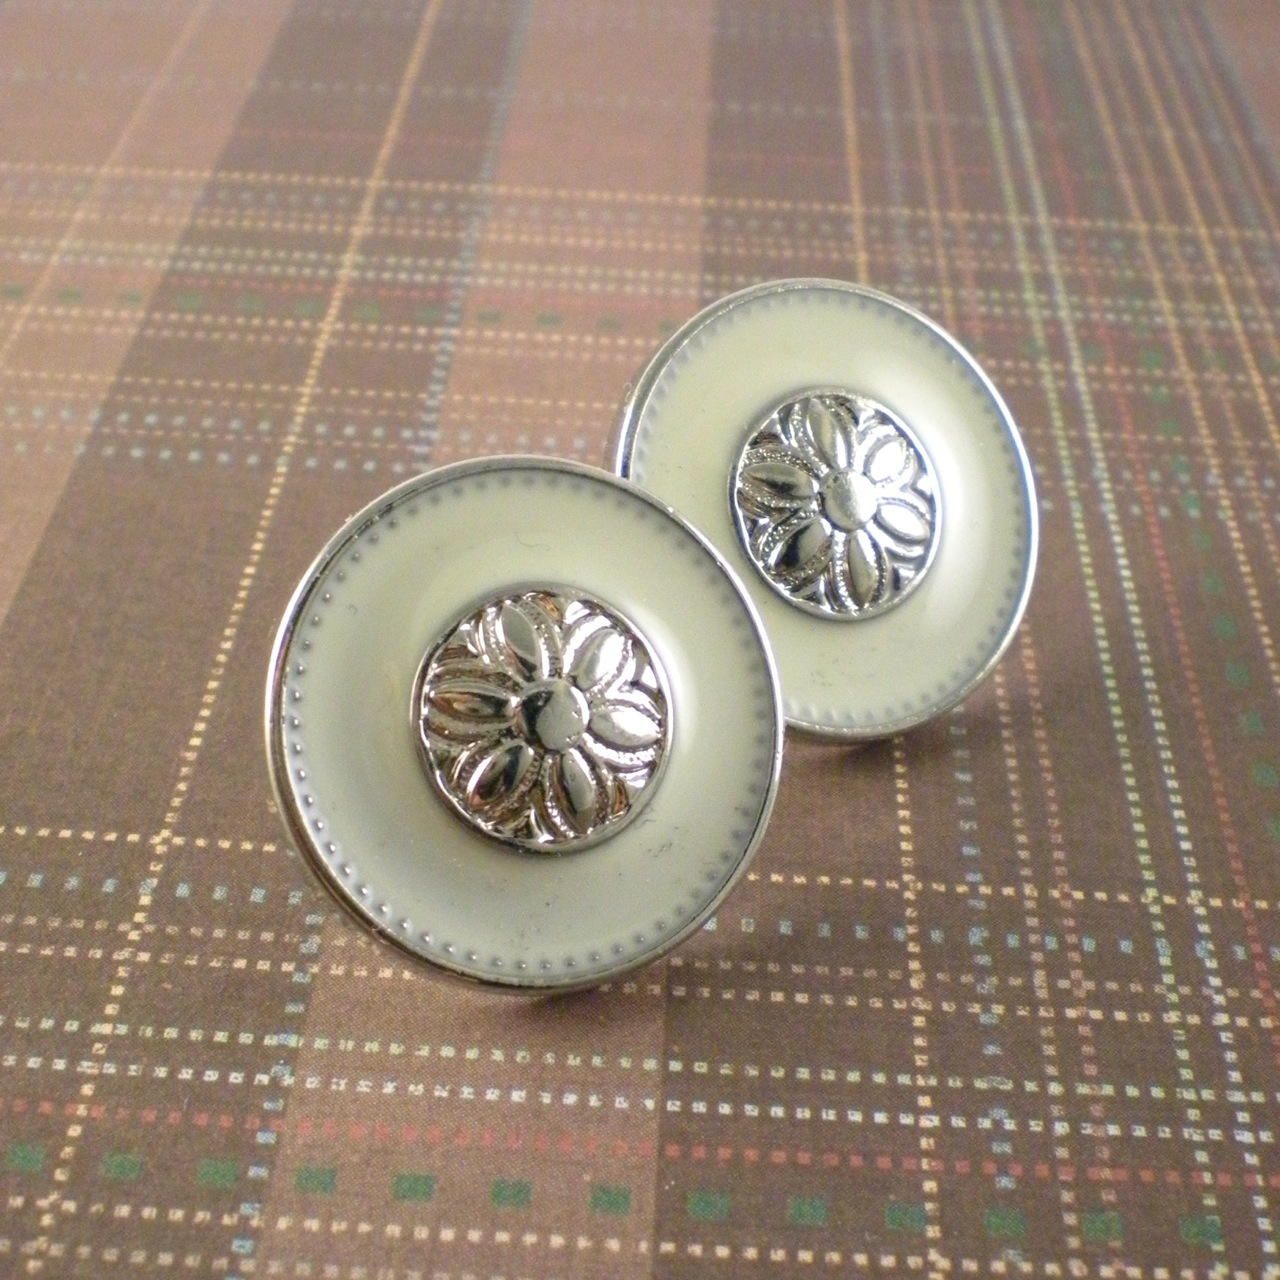 Jewelry, Bridesmaids, Bridesmaids Dresses, Vintage Wedding Dresses, Fashion, white, ivory, yellow, silver, Earrings, Vintage, Bride, Bridesmaid, Bridal, Button, Cream, Old, Earring, Dana saylor designs, Post, Enamel